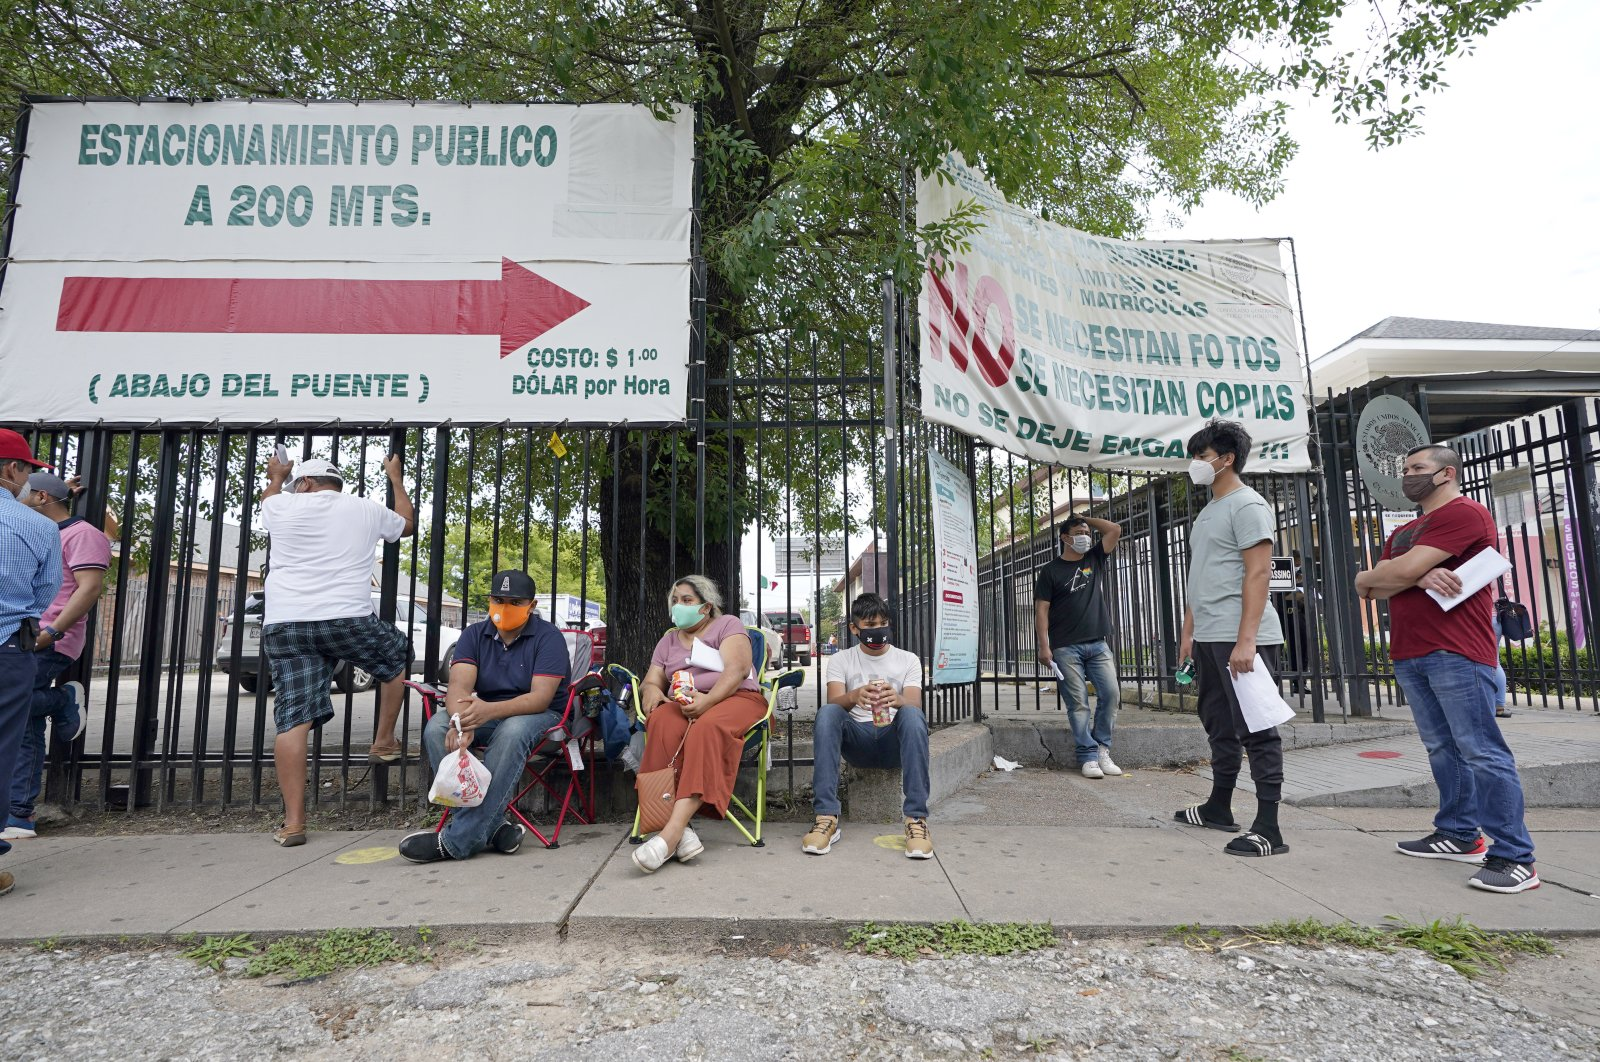 People wait in line at a free COVID-19 testing site at the Mexican Consulate, Houston, Texas, June 28, 2020. (AP Photo)